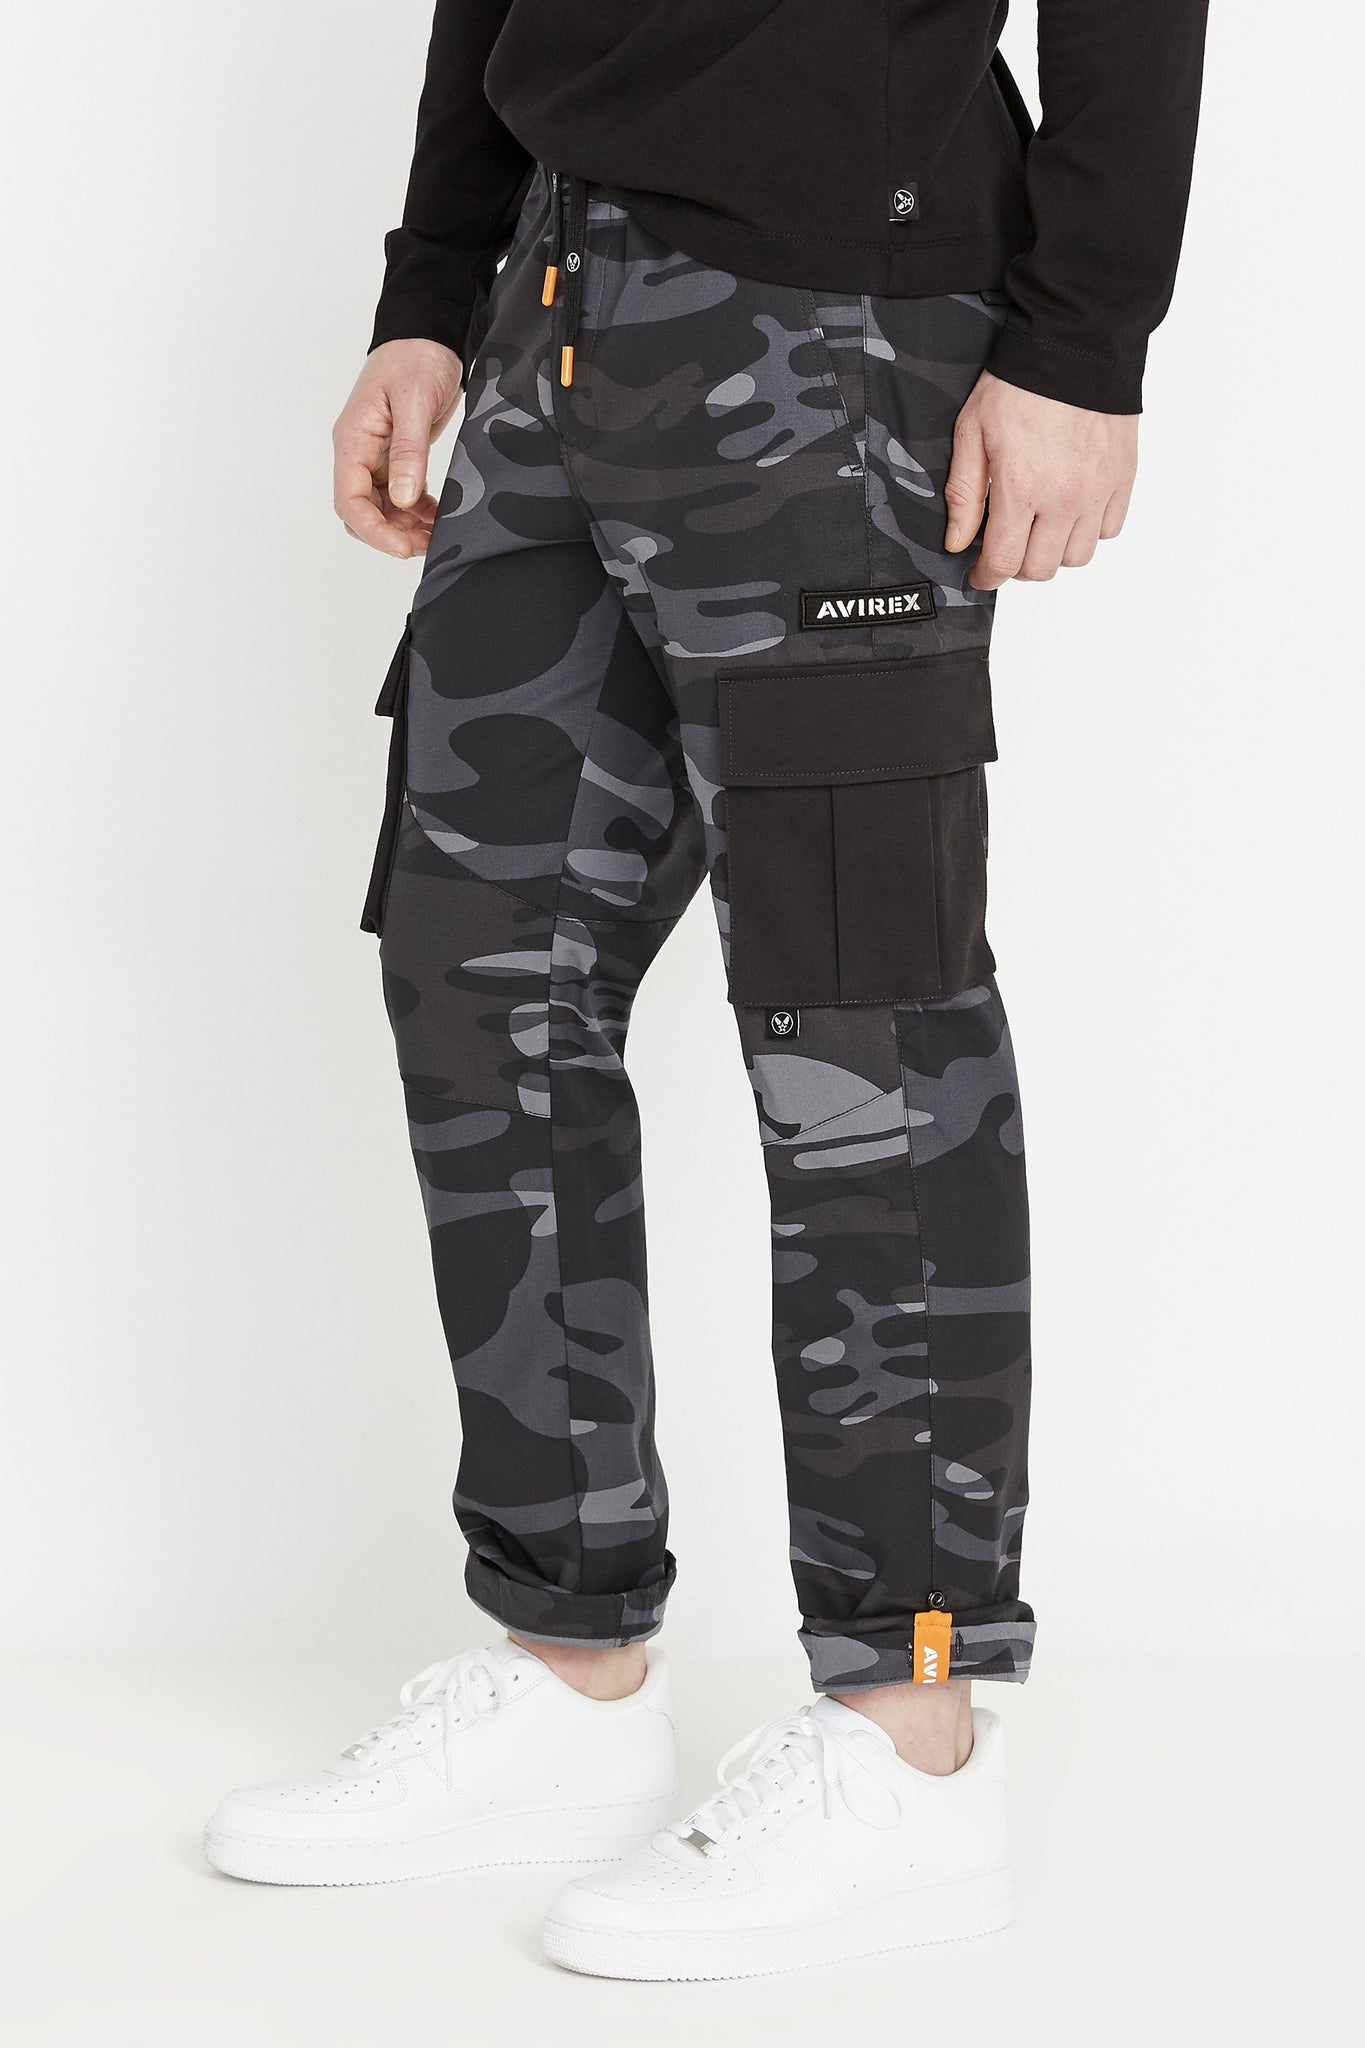 Side view of black camo print pants with cargo pockets in solid color and Avirex Patch above.  Rolled up hem with reflective logo